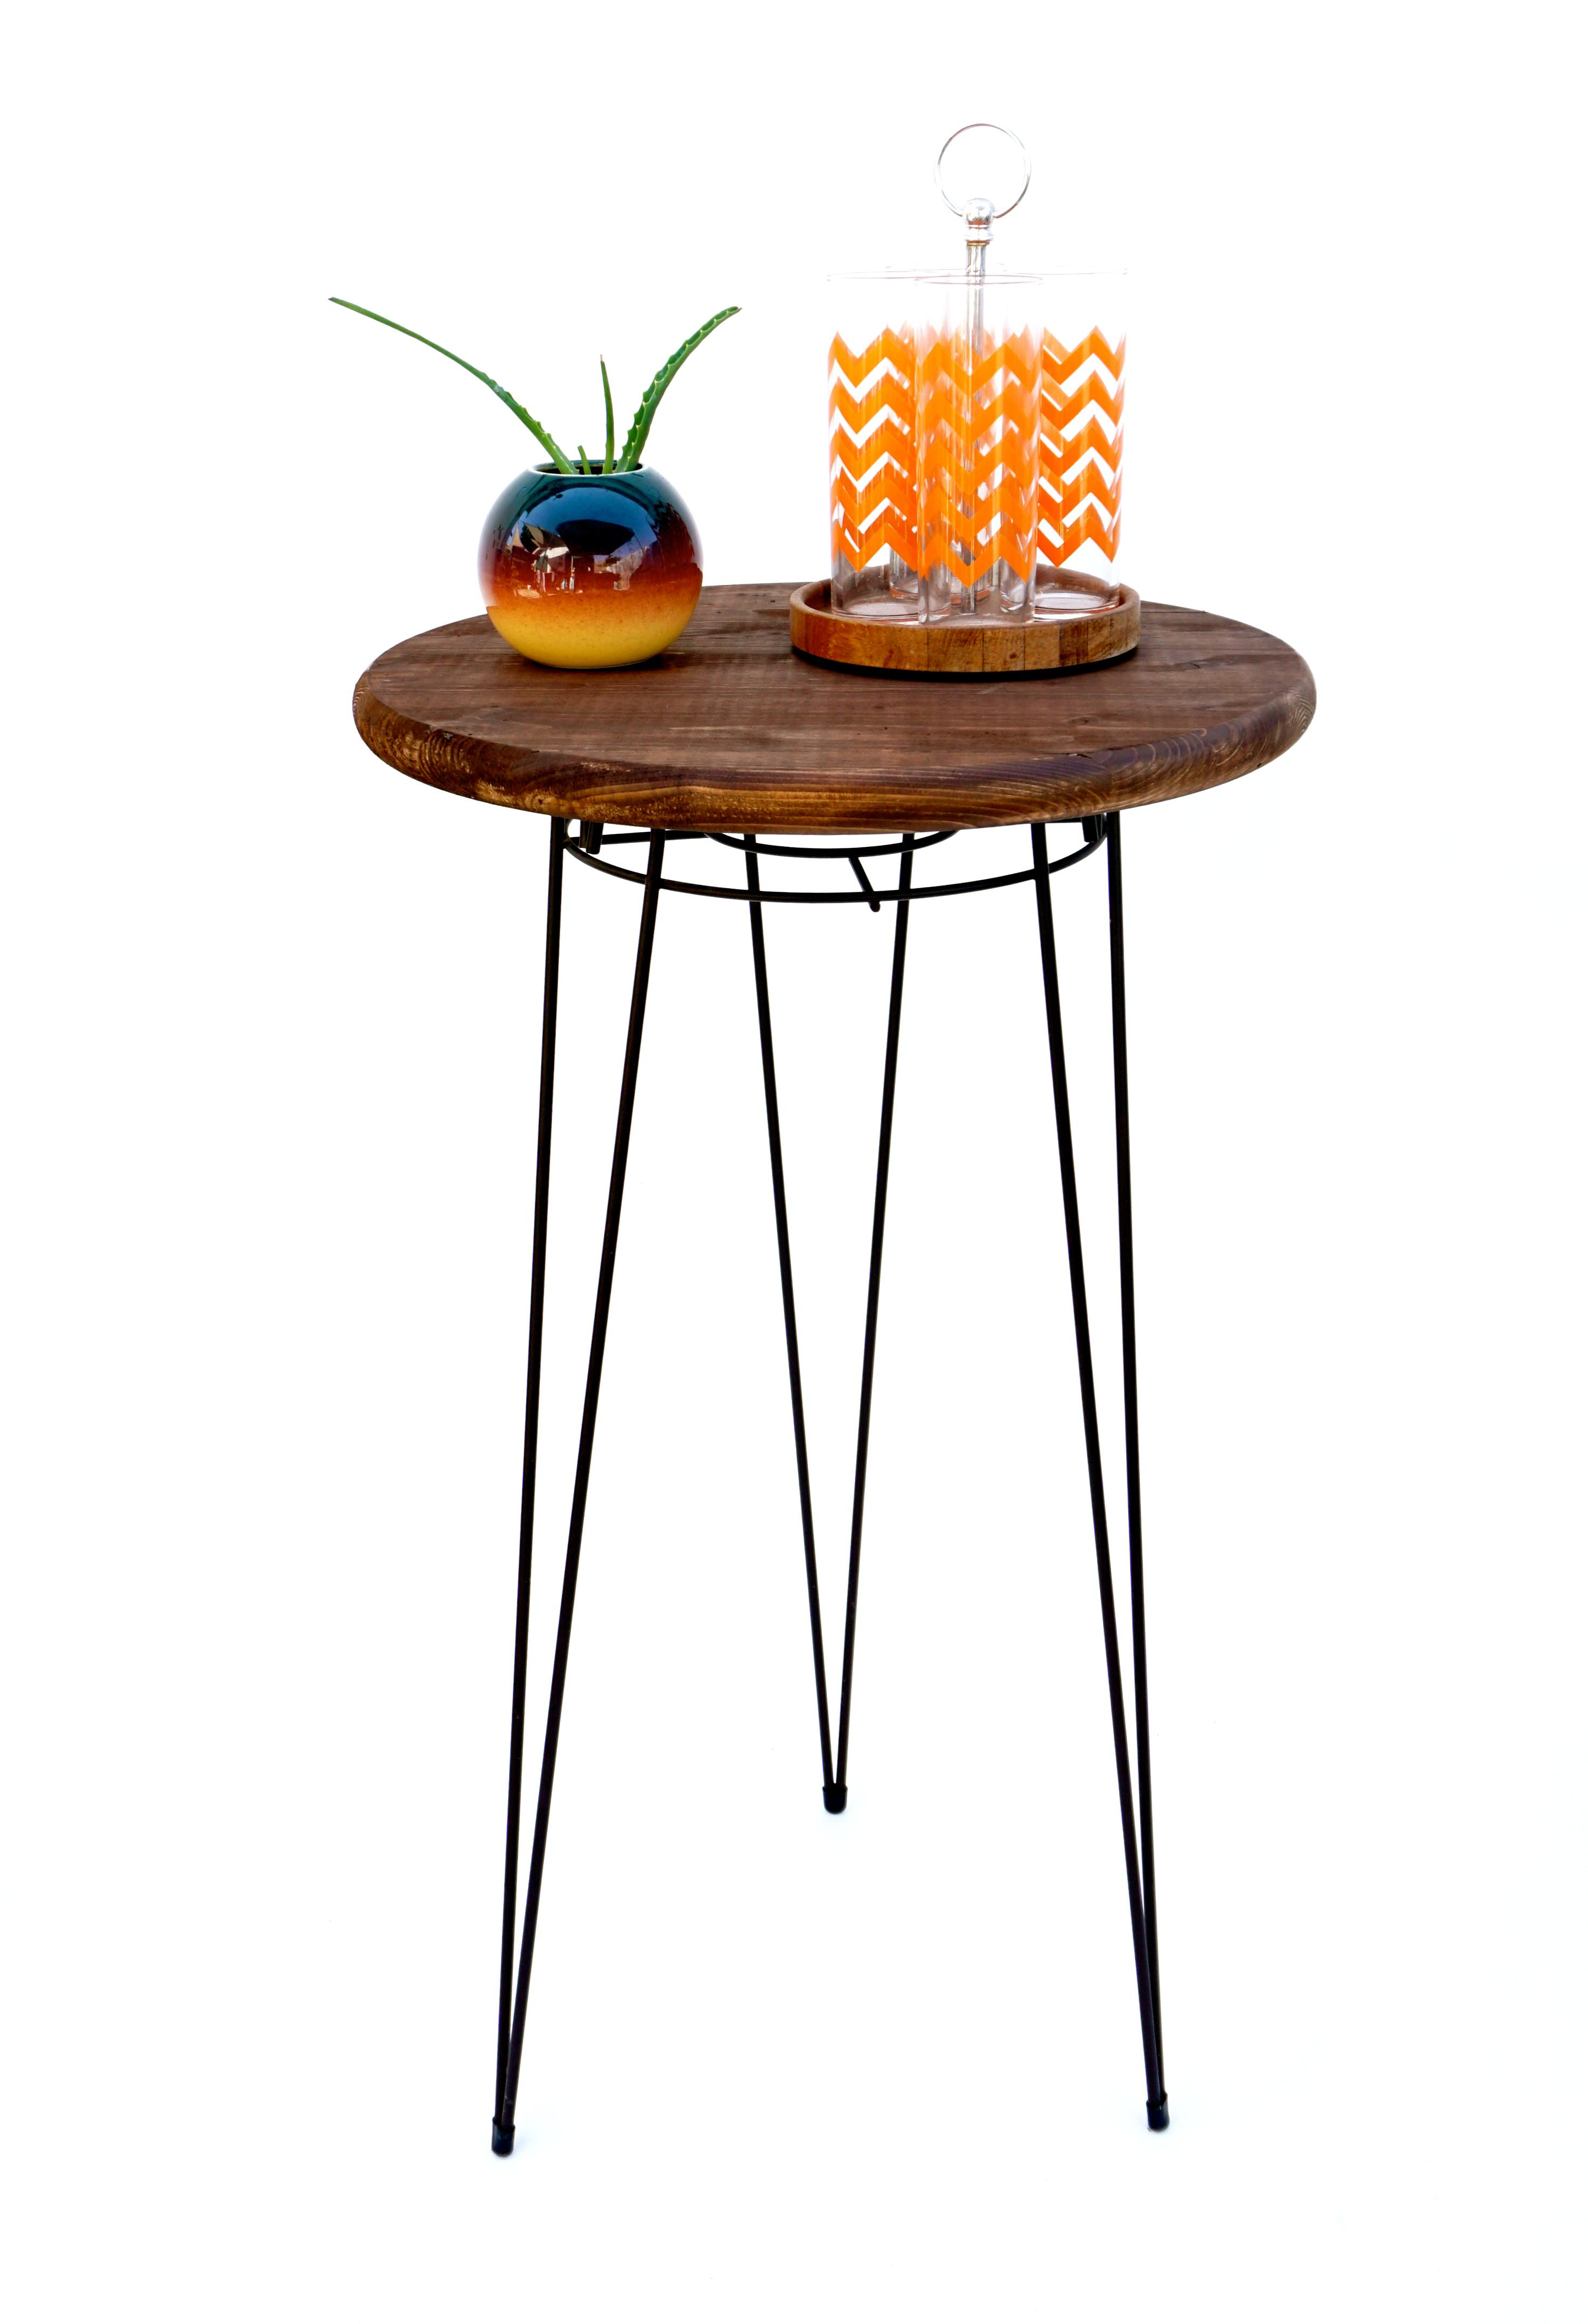 Merveilleux Mid Century Modern Metal Hairpin U0026 Wood Plant Stand / Table   Image 2 Of